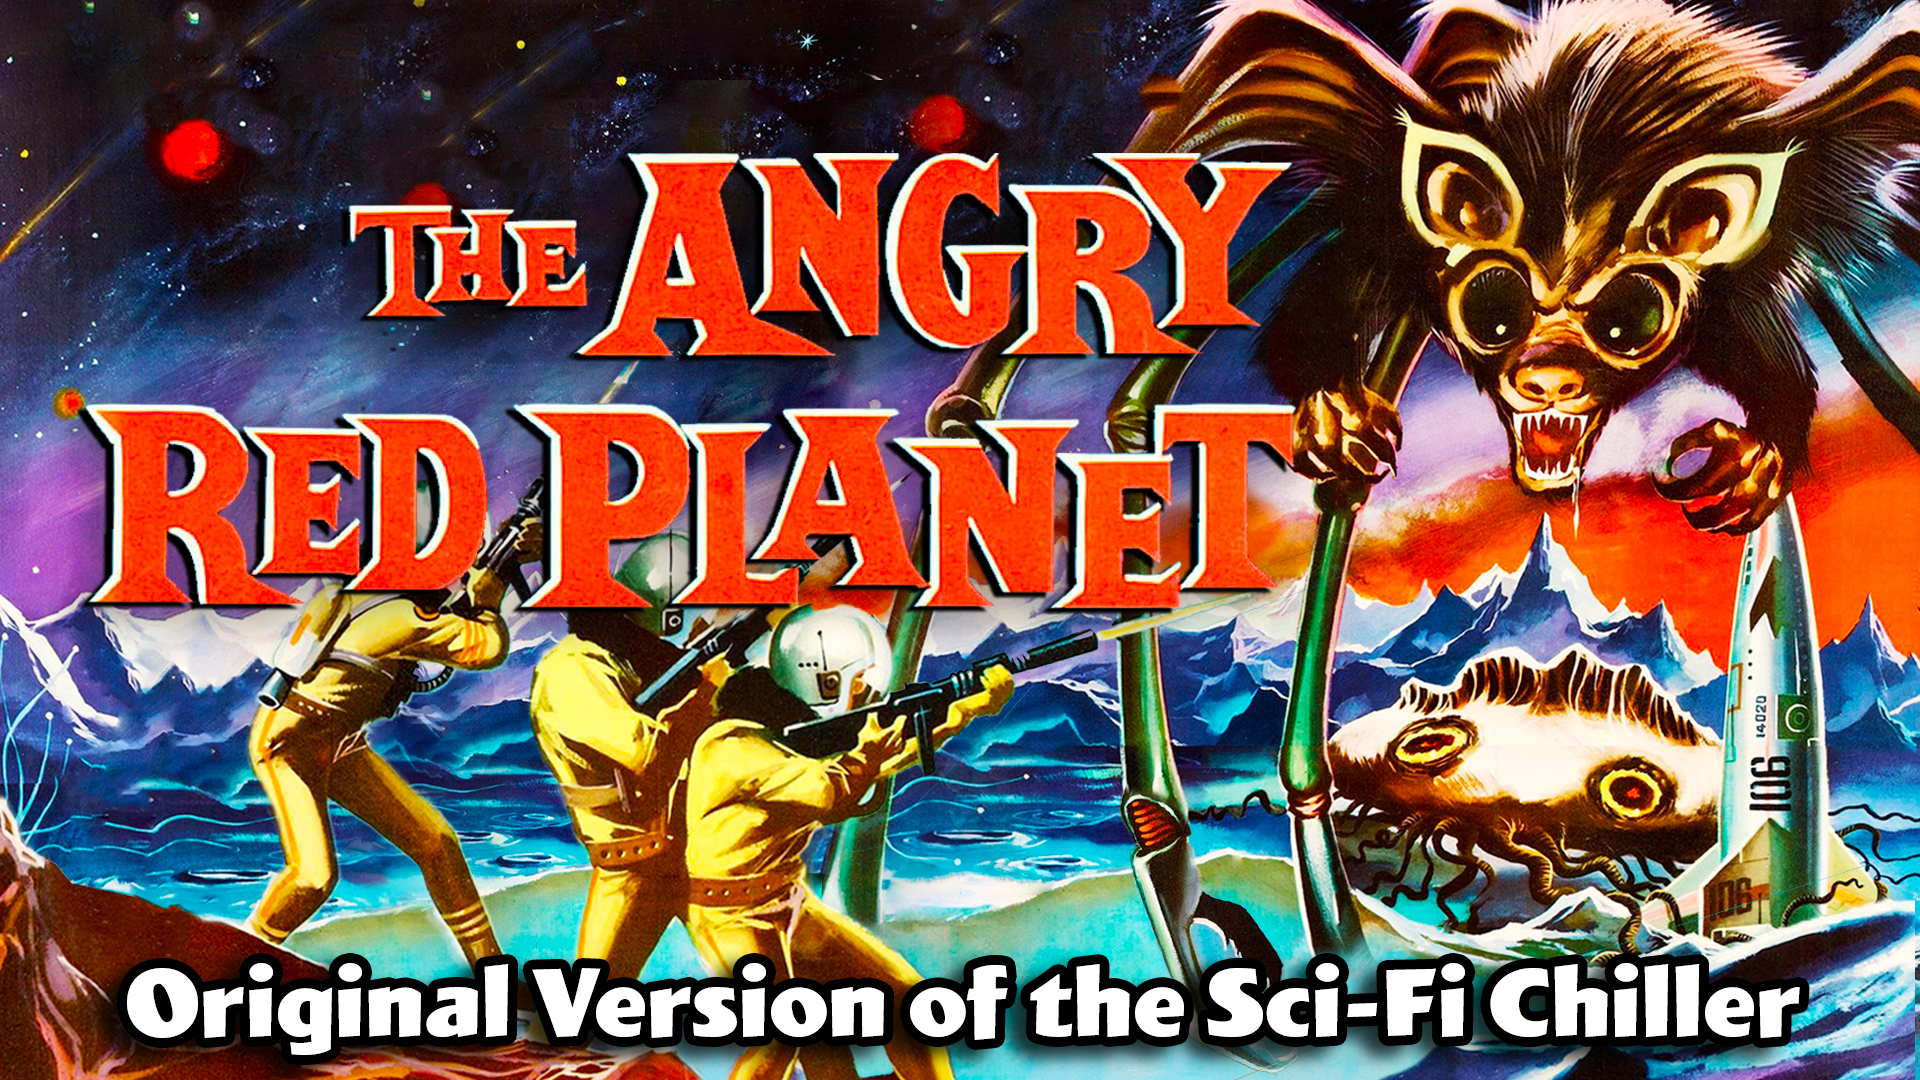 The Angry Red Planet - Original Version Of The Sci-Fi Classic!